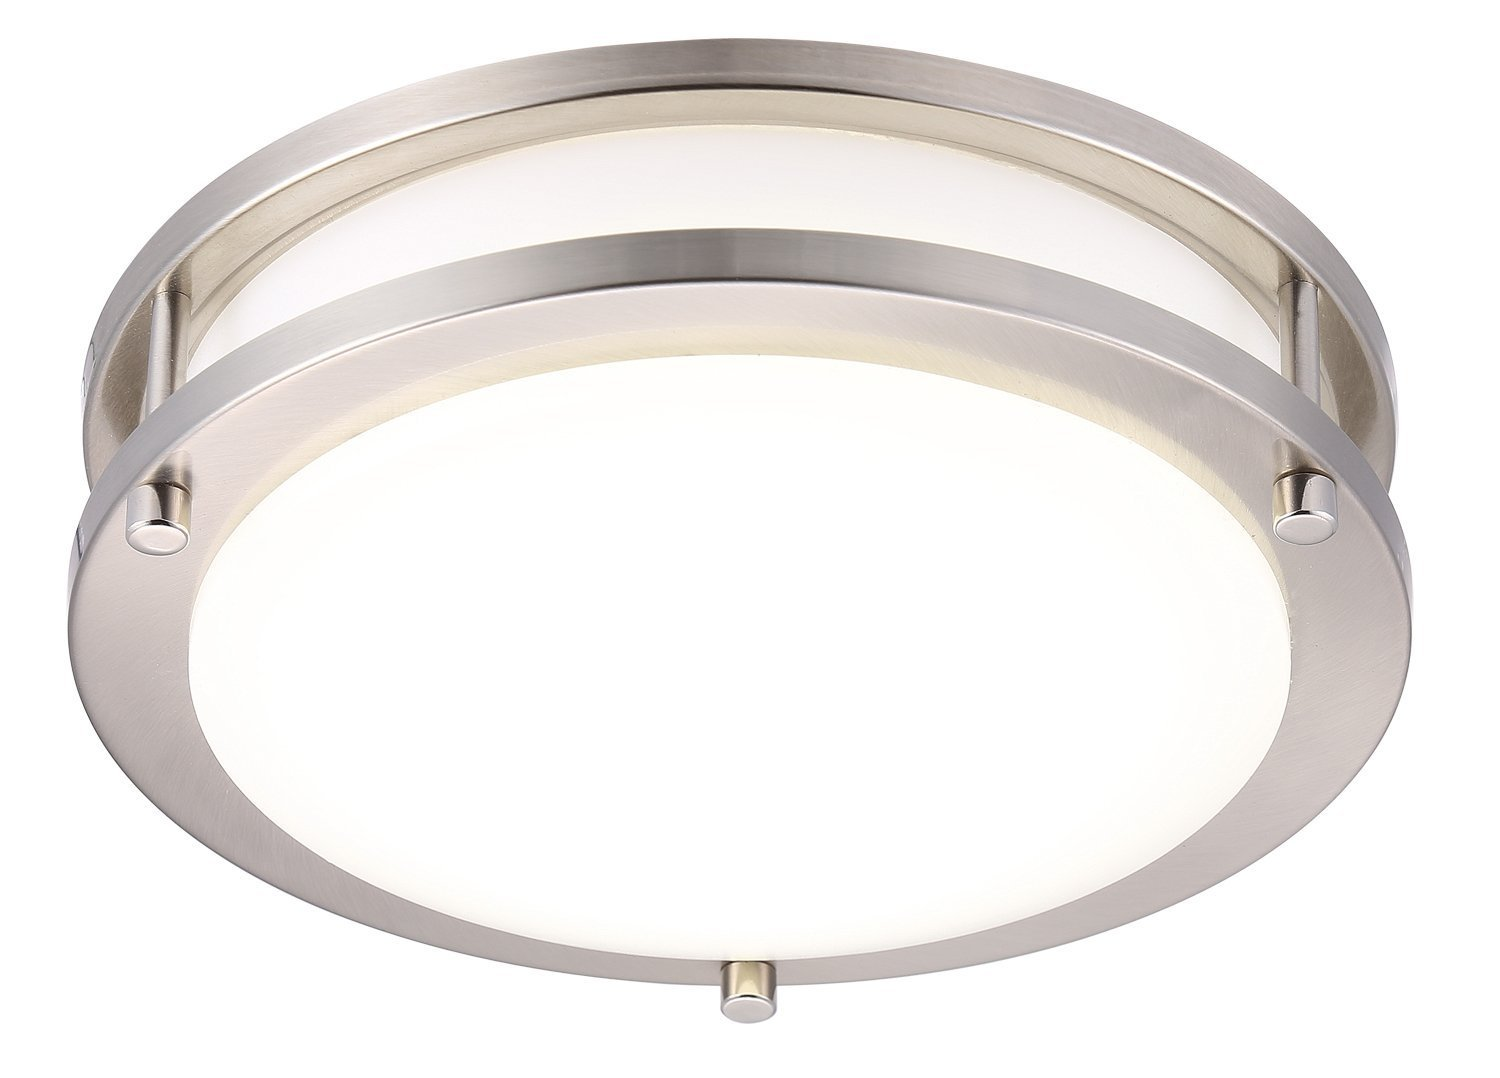 Cloudy Bay LED Flush Mount Ceiling Light,10 inch,17W(120W Equivalent) Dimmable 1150lm,5000K Day Light,Brushed Nickel Round Lighting Fixture for Kitchen,Hallway,Bathroom,Stairwell